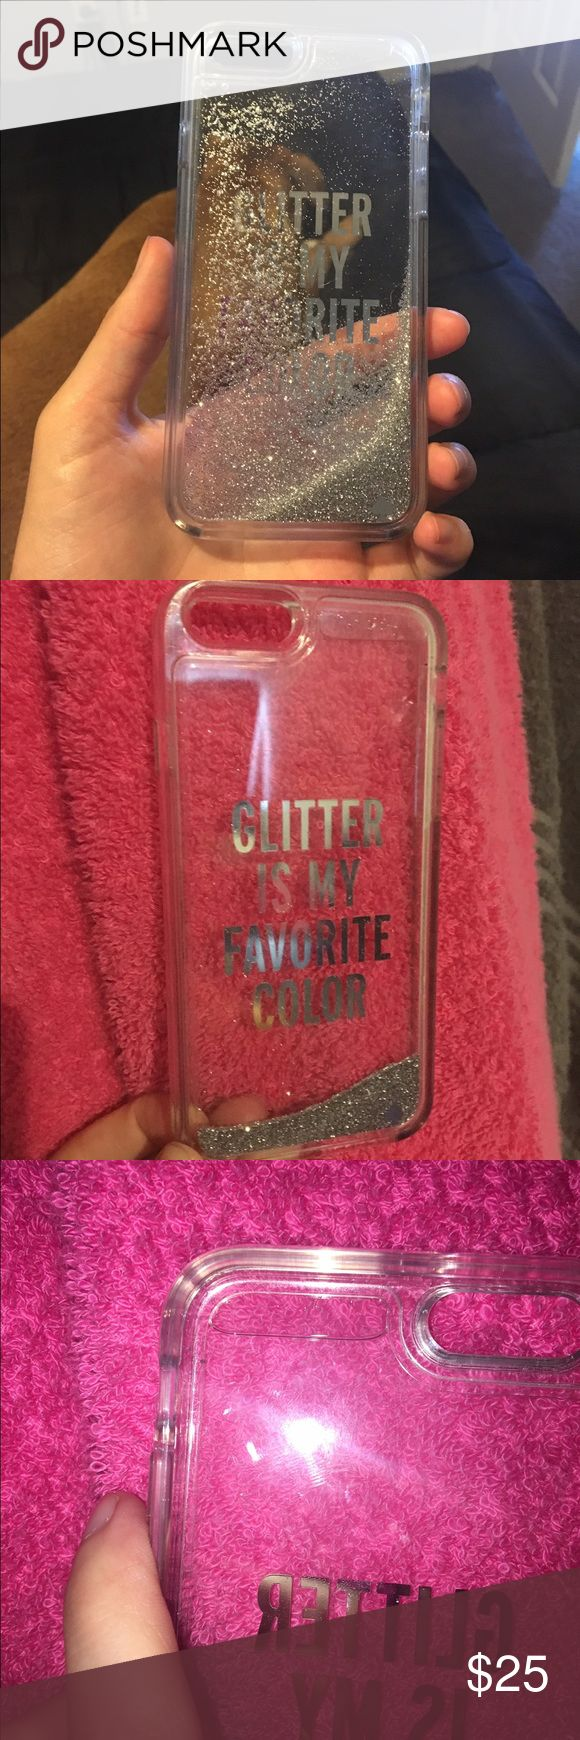 Kate spade glitter water iPhone 6/6s case Glitter is my favorite color - used for a week   There is a bubble at the top of the case. Still is super cute.  Price is firm so no offers on this please. Will only take asking price. Ⓜ️ - Hailey Howard kate spade Other